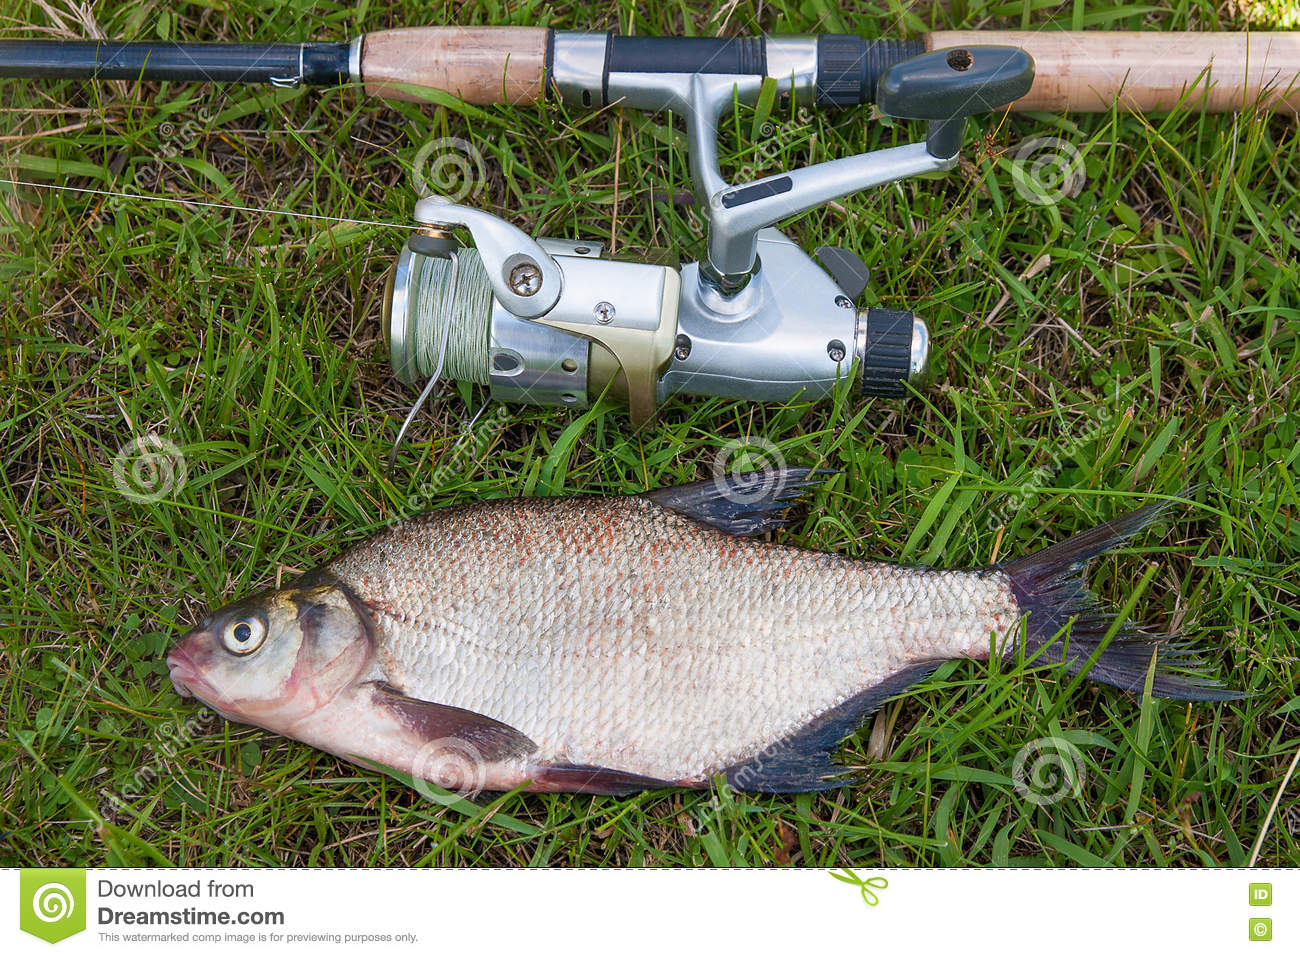 Freshwater fish bream - Common Bream Fish On Green Grass Catching Freshwater Fish And F